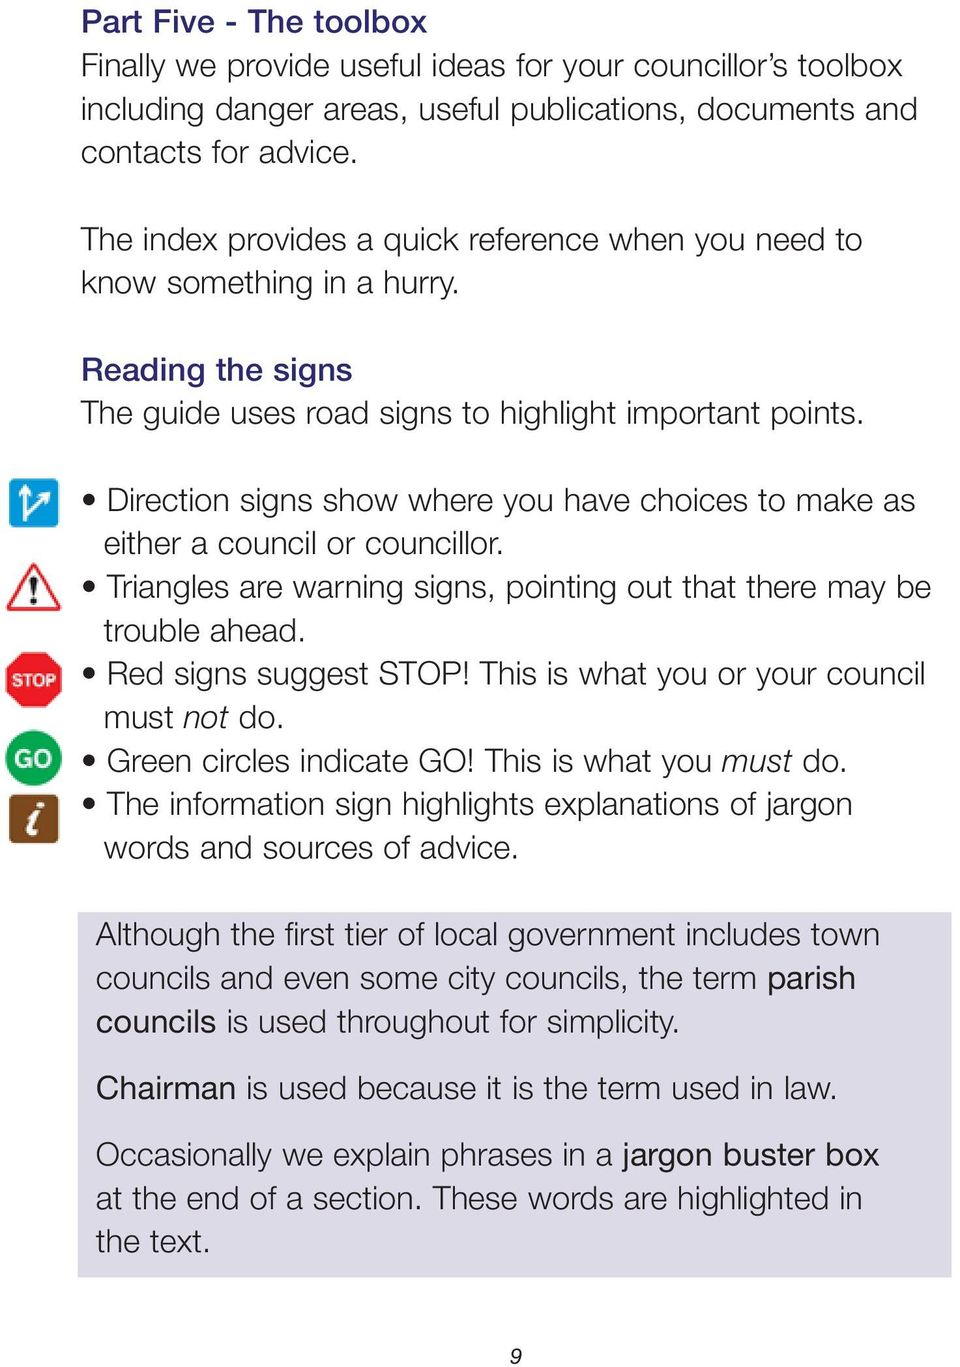 Direction signs show where you have choices to make as either a council or councillor. Triangles are warning signs, pointing out that there may be trouble ahead. Red signs suggest STOP!